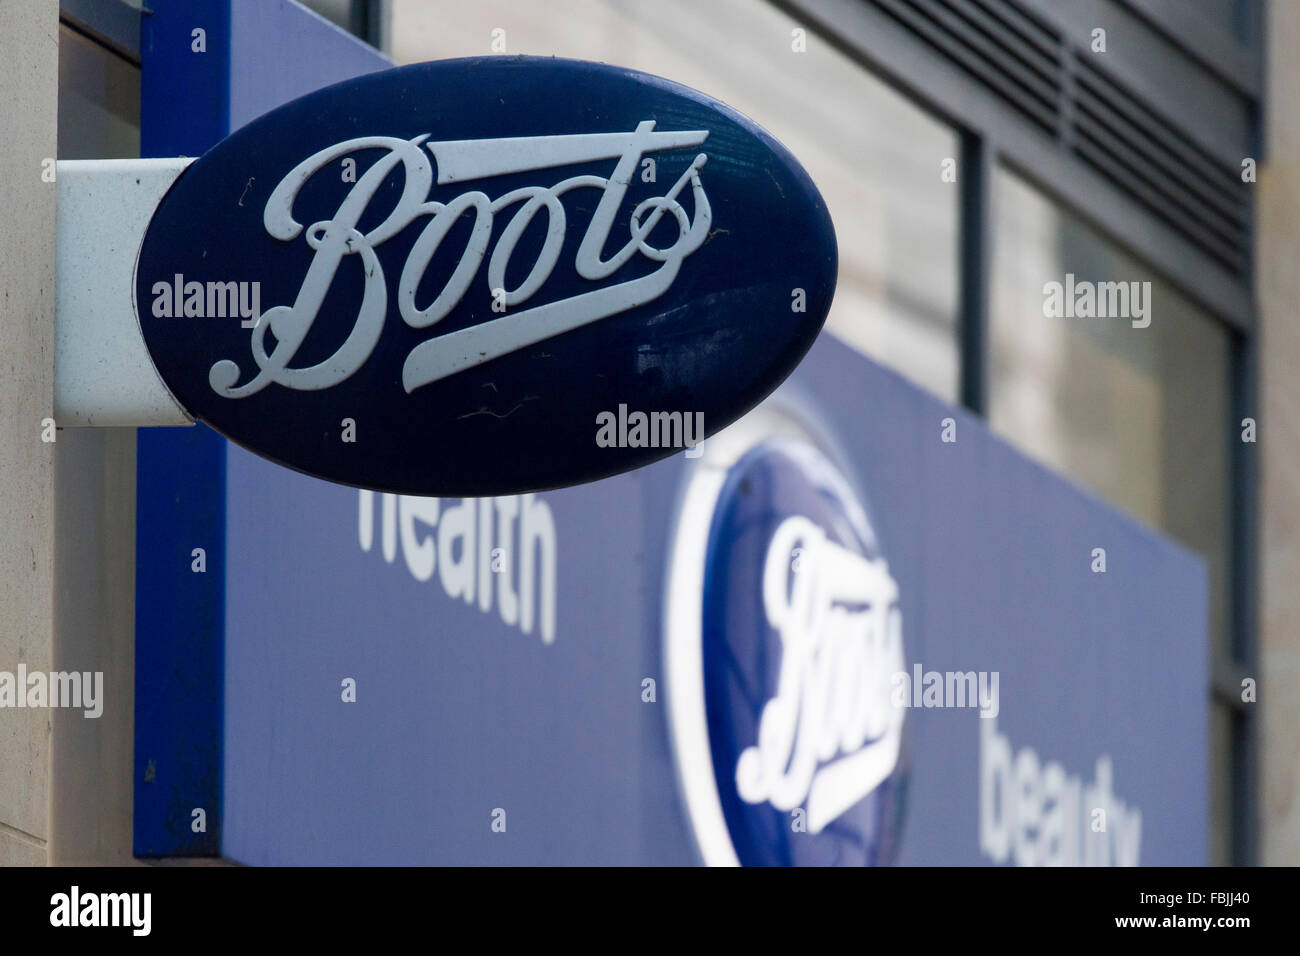 Boots chemist store sign logo high street. Stock Photo